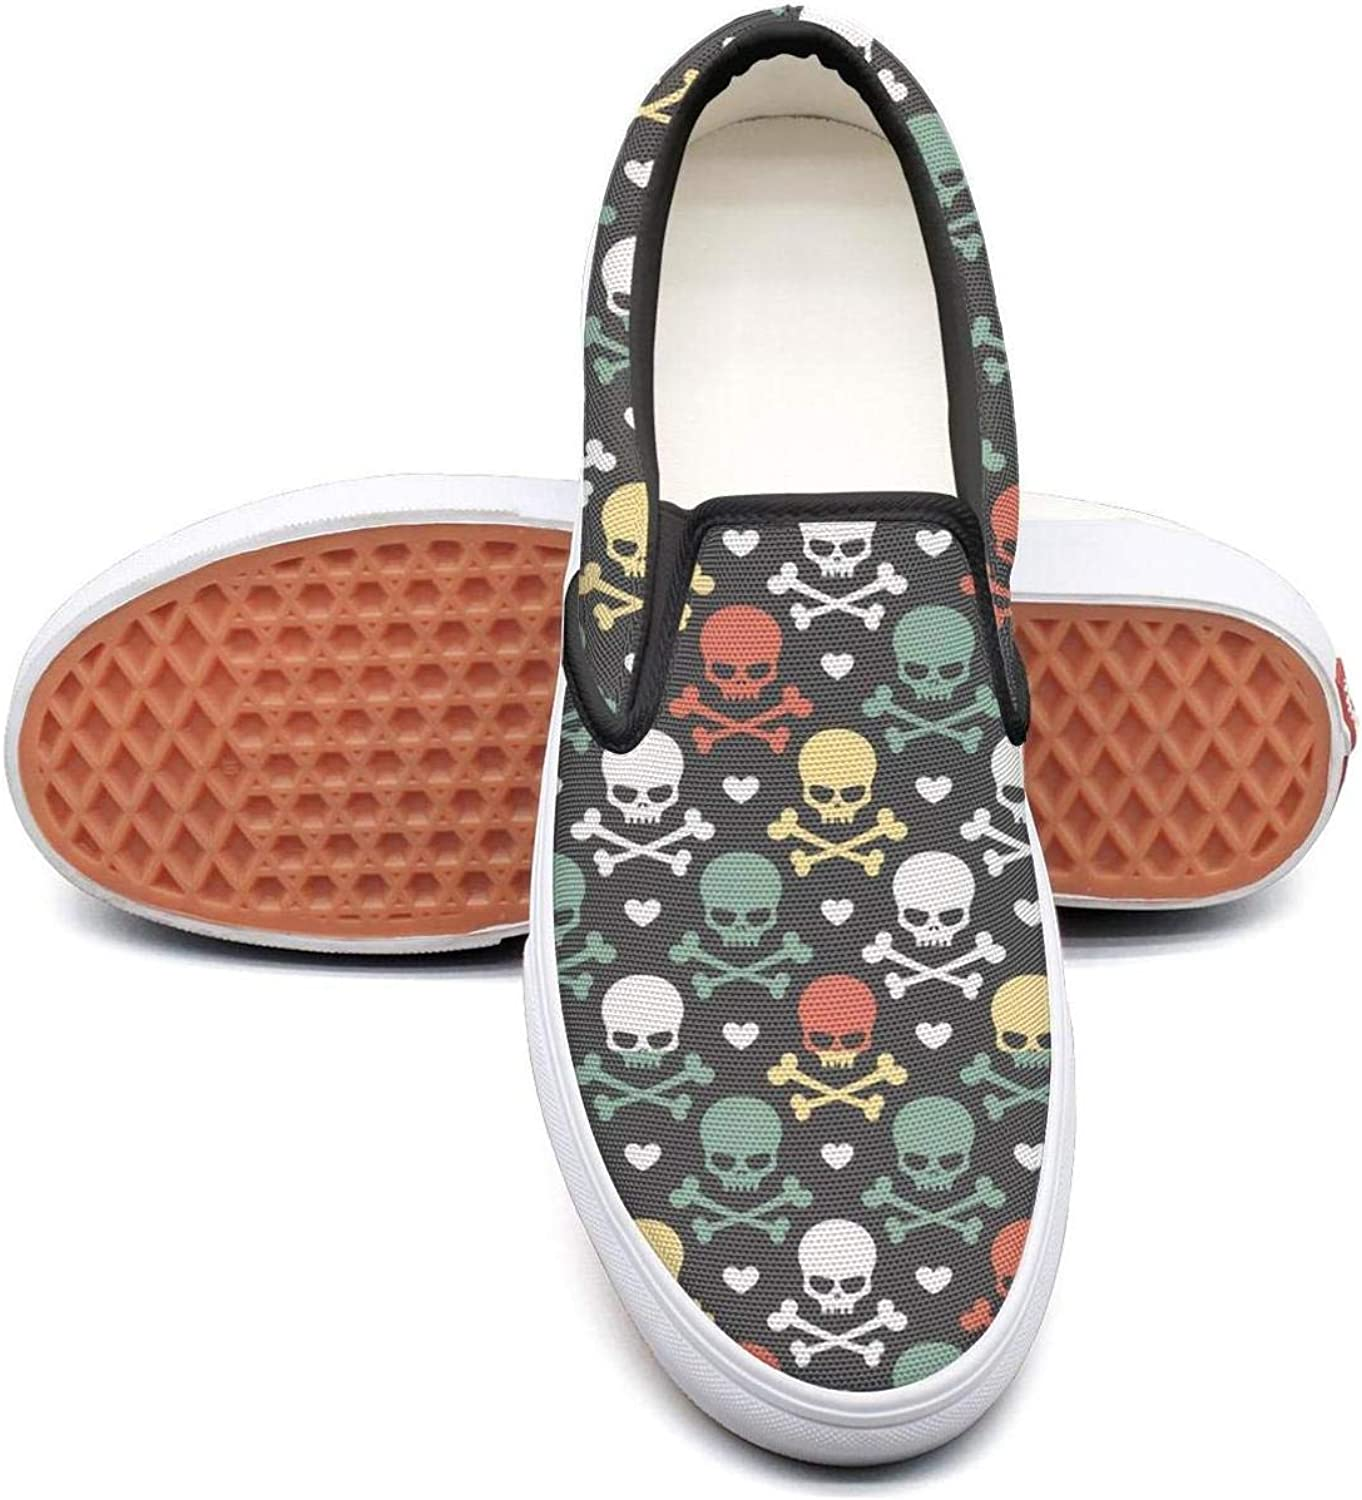 Skulls and Bones (2) Slip On Superior Comfort Loafers Canvas shoes for Women Round Toe